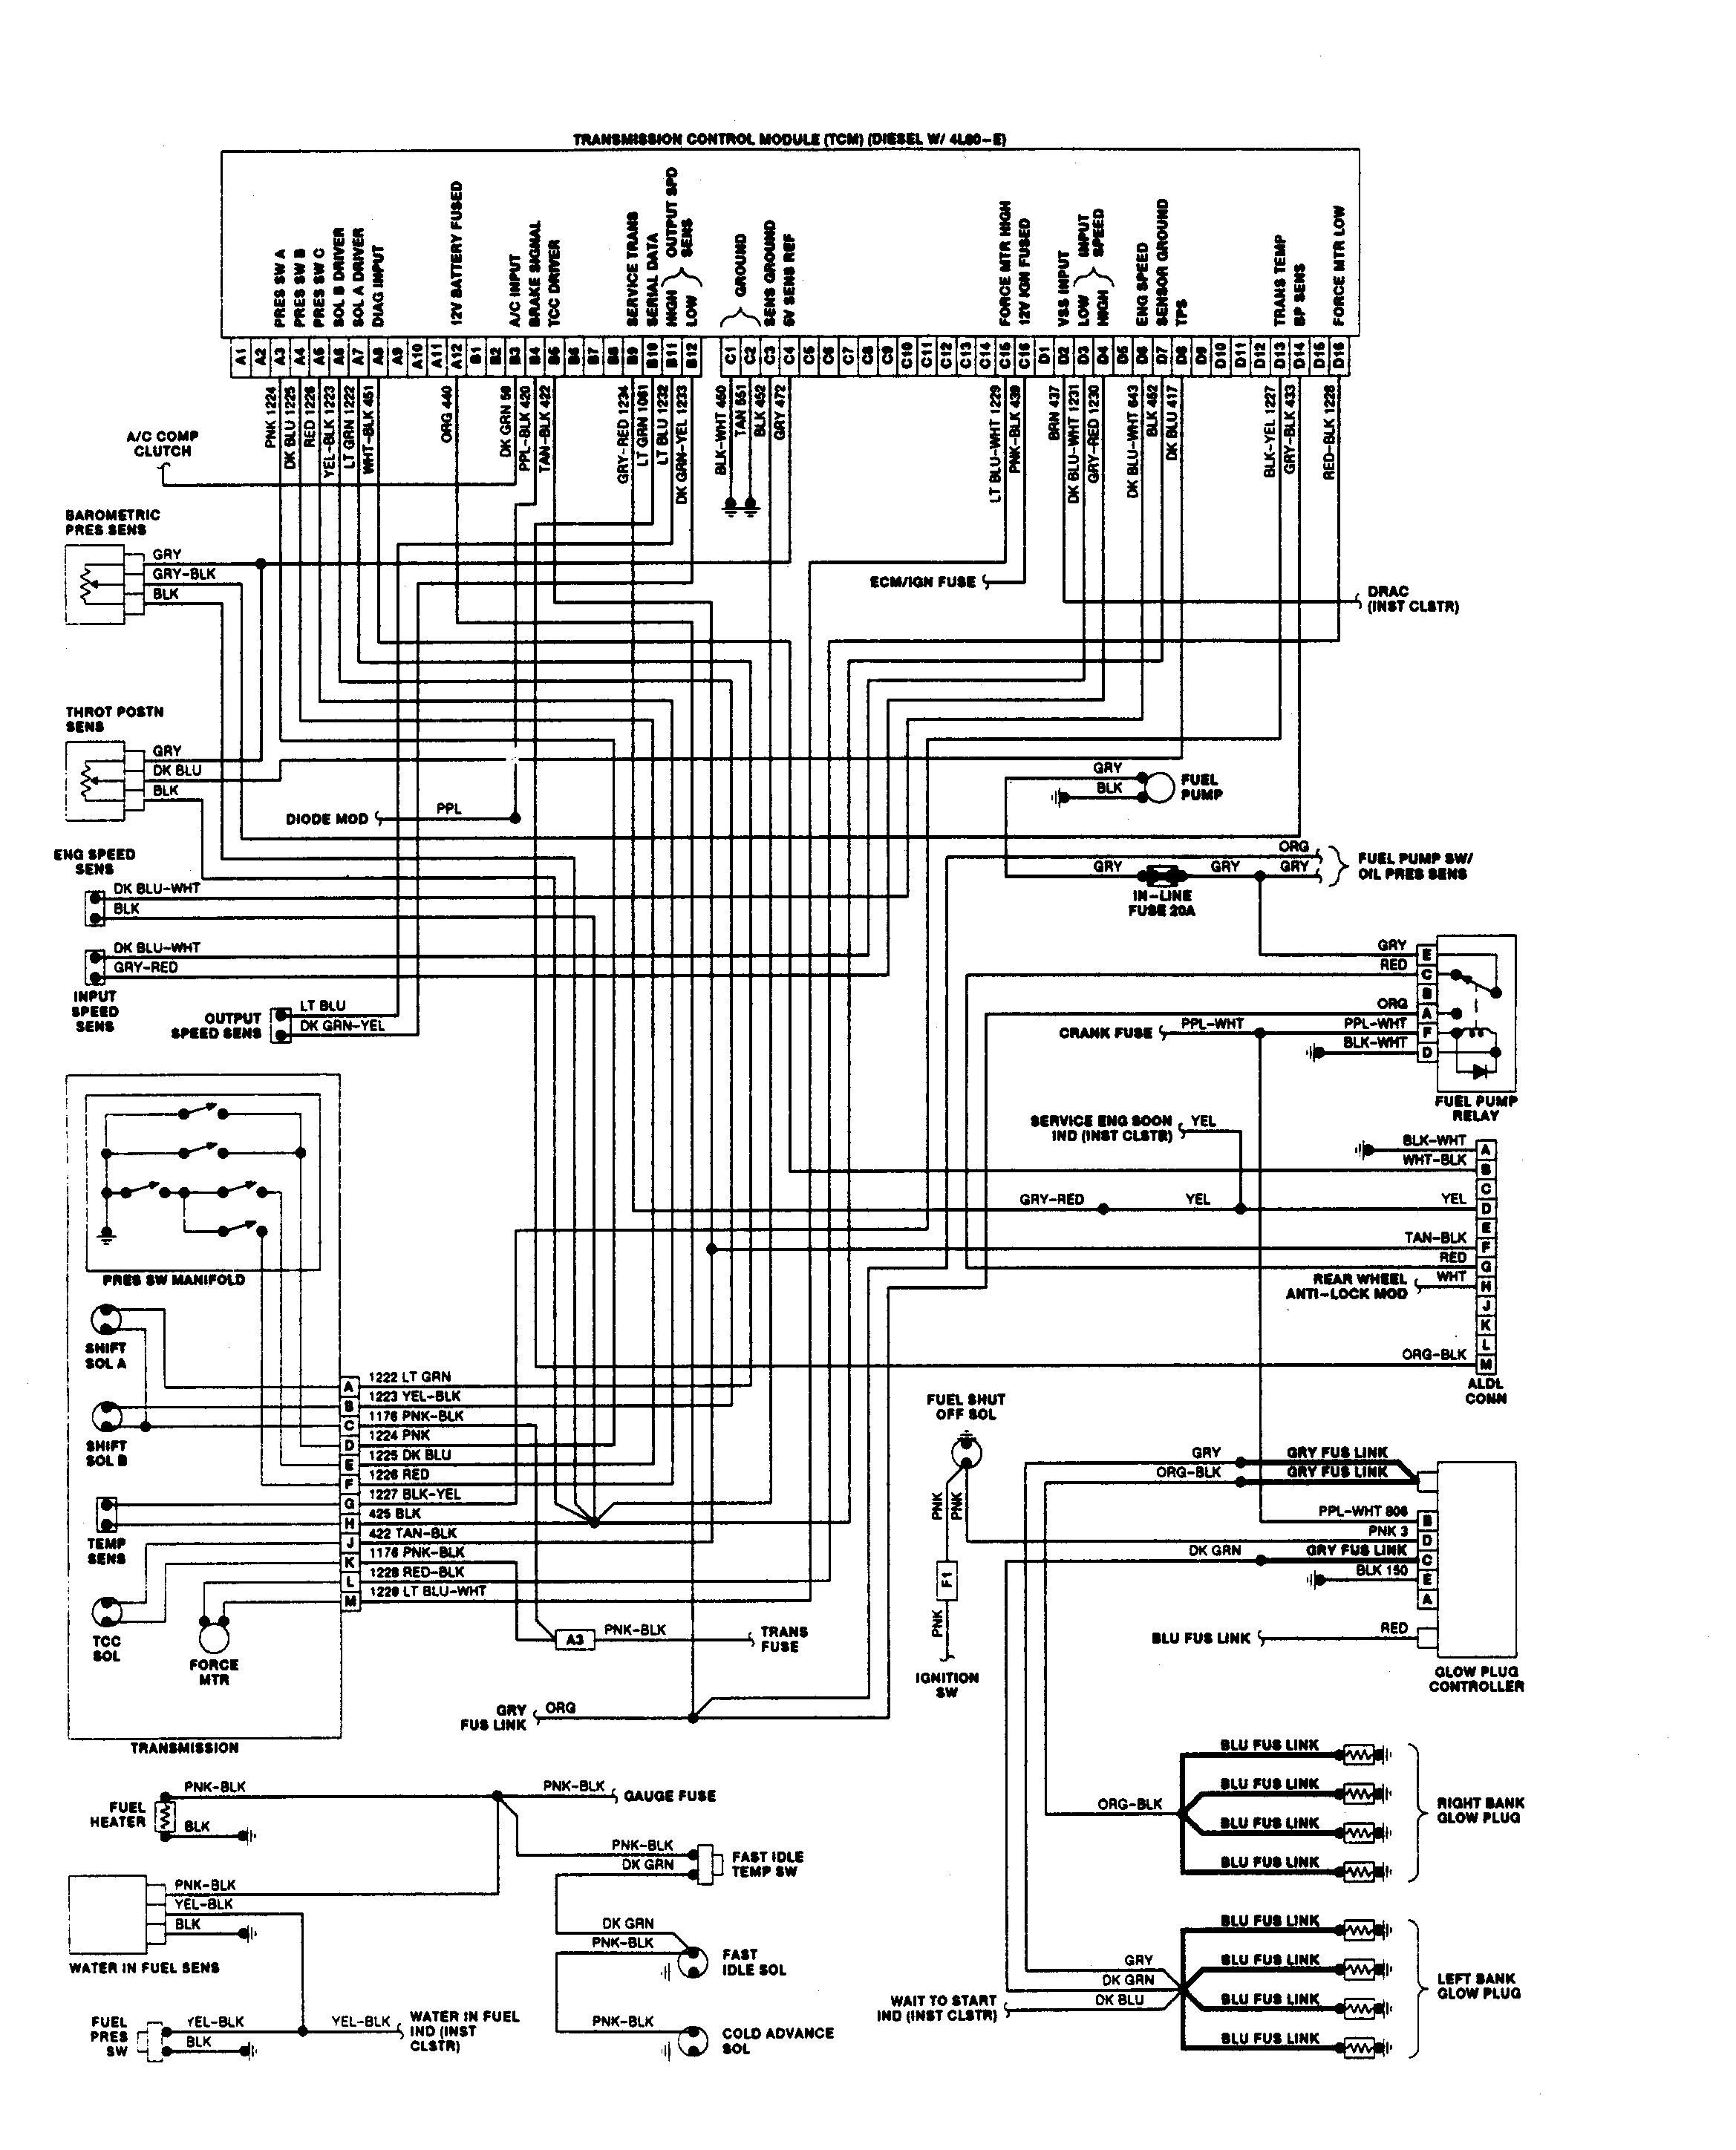 1991 chevy p30 wiring diagrams wiring diagrams schematics rh pinterest com